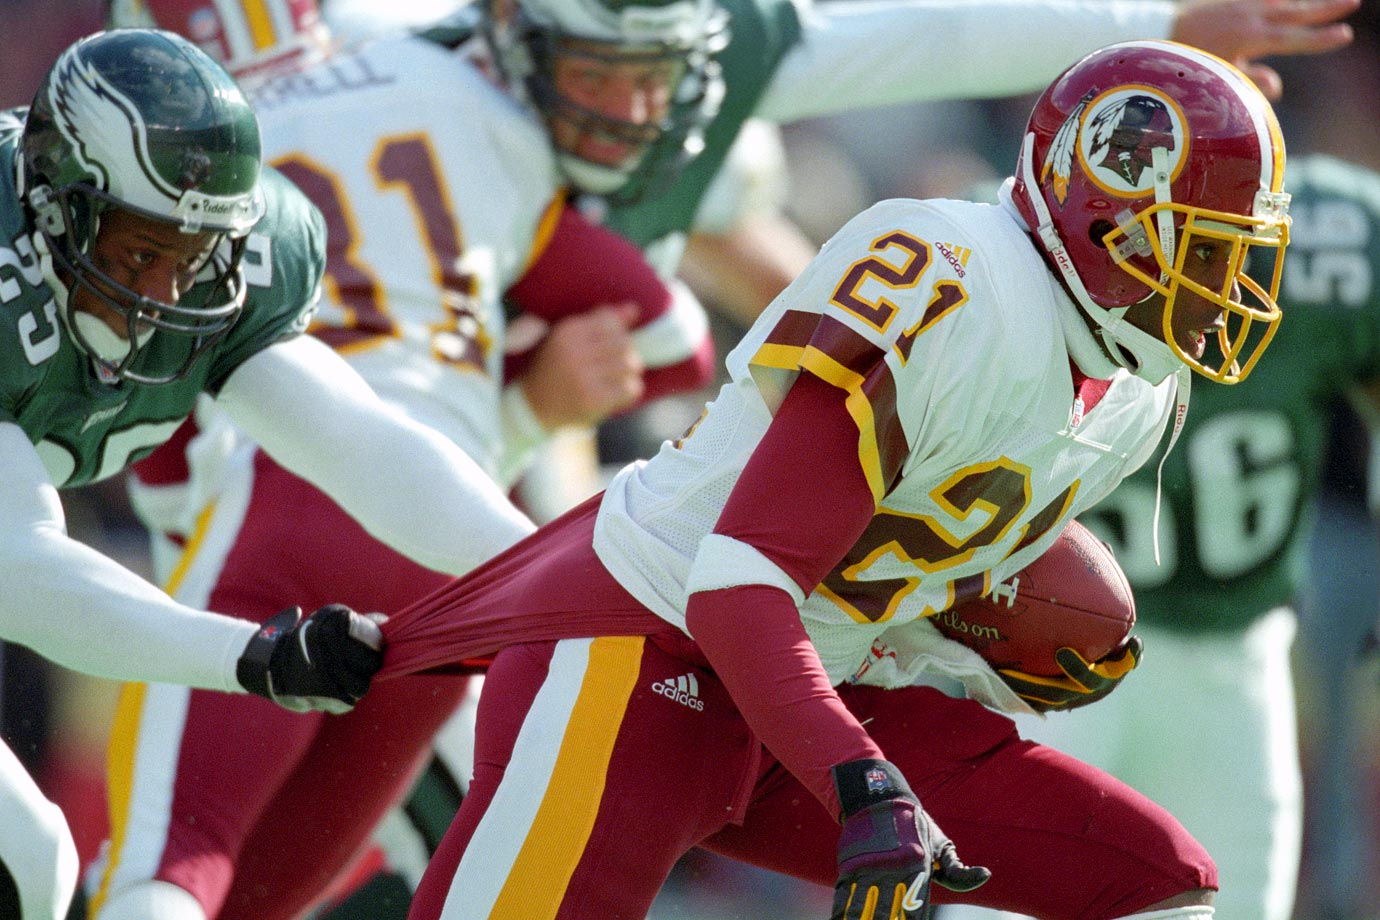 Sanders did not play poorly in his one and only season for Washington, but the Redskins grossly overpaid for the aged cornerback. Owner Dan Snyder gave Sanders an eight-year, $56 million deal -- with an $8 million signing bonus -- but he was not the same player who had made eight out of the previous nine Pro Bowls.